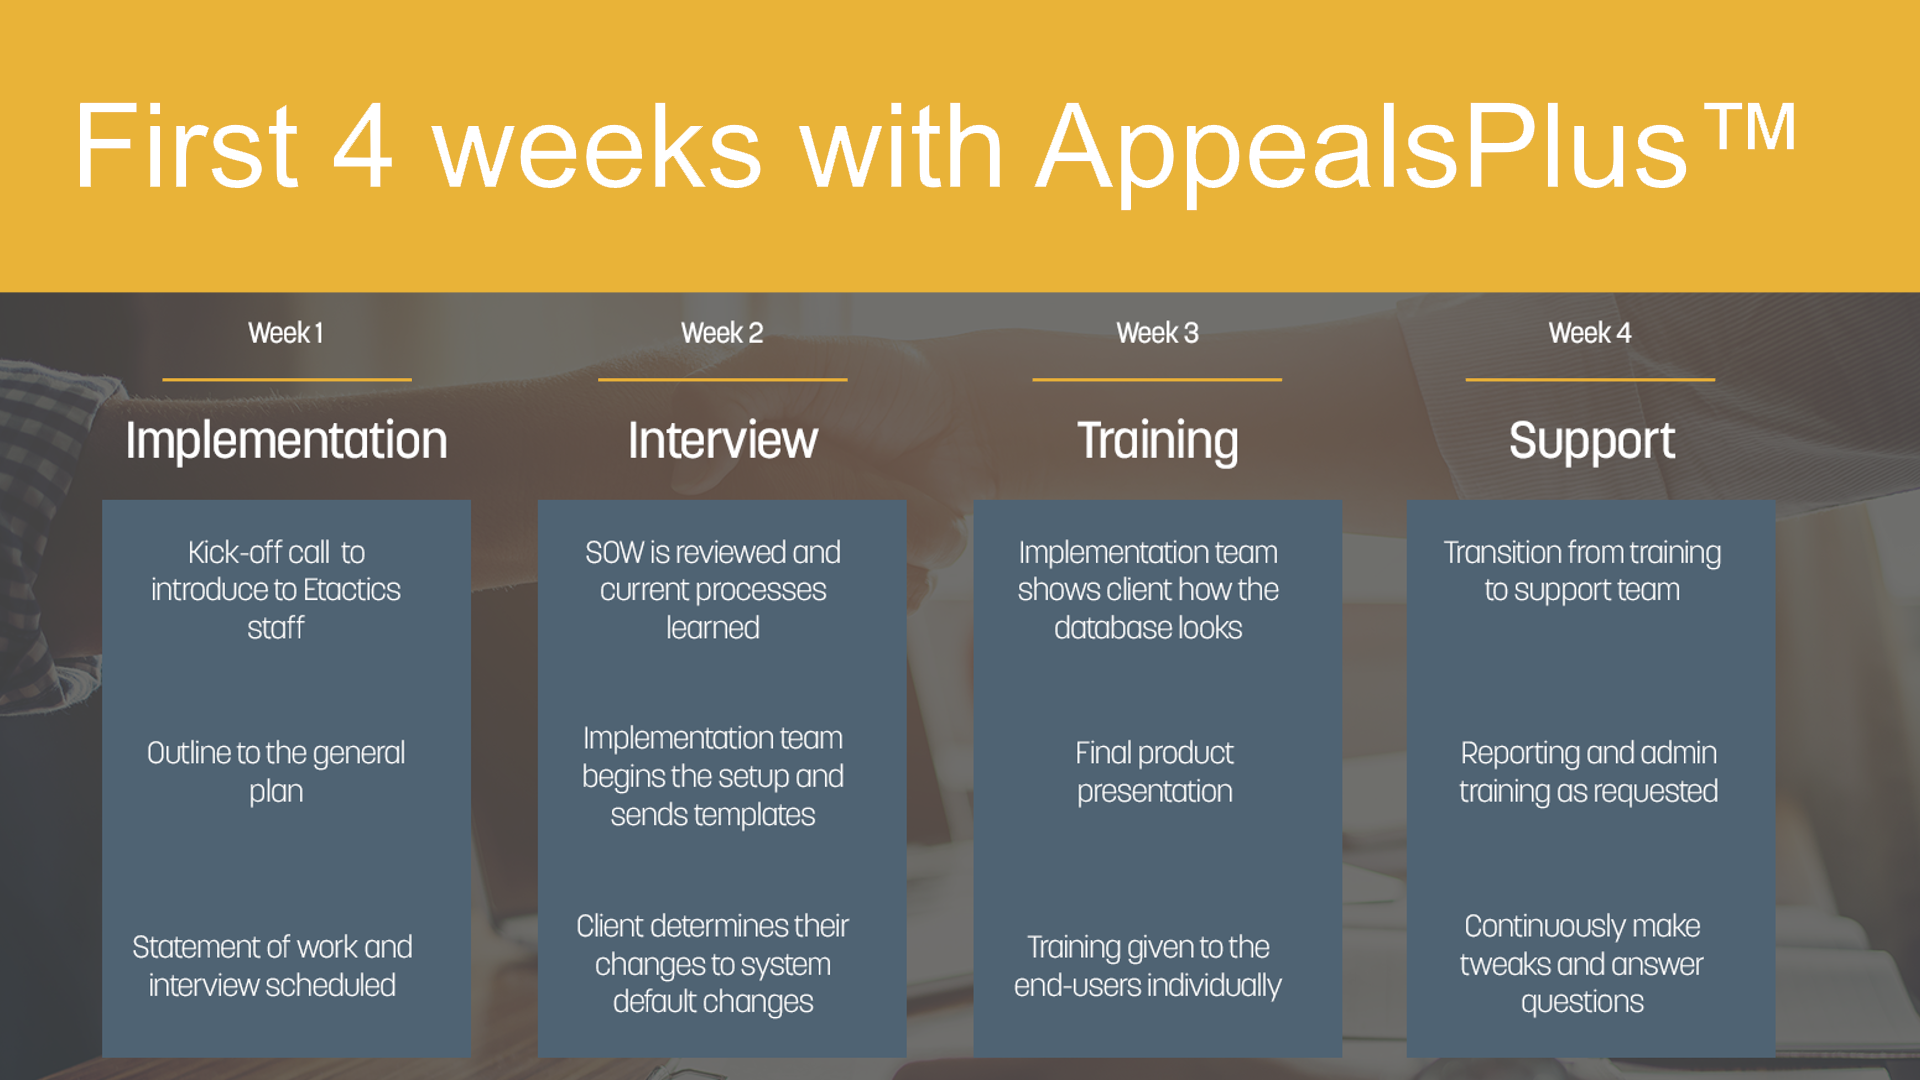 A graphic explaining the implementation process involved with AppealsPlus